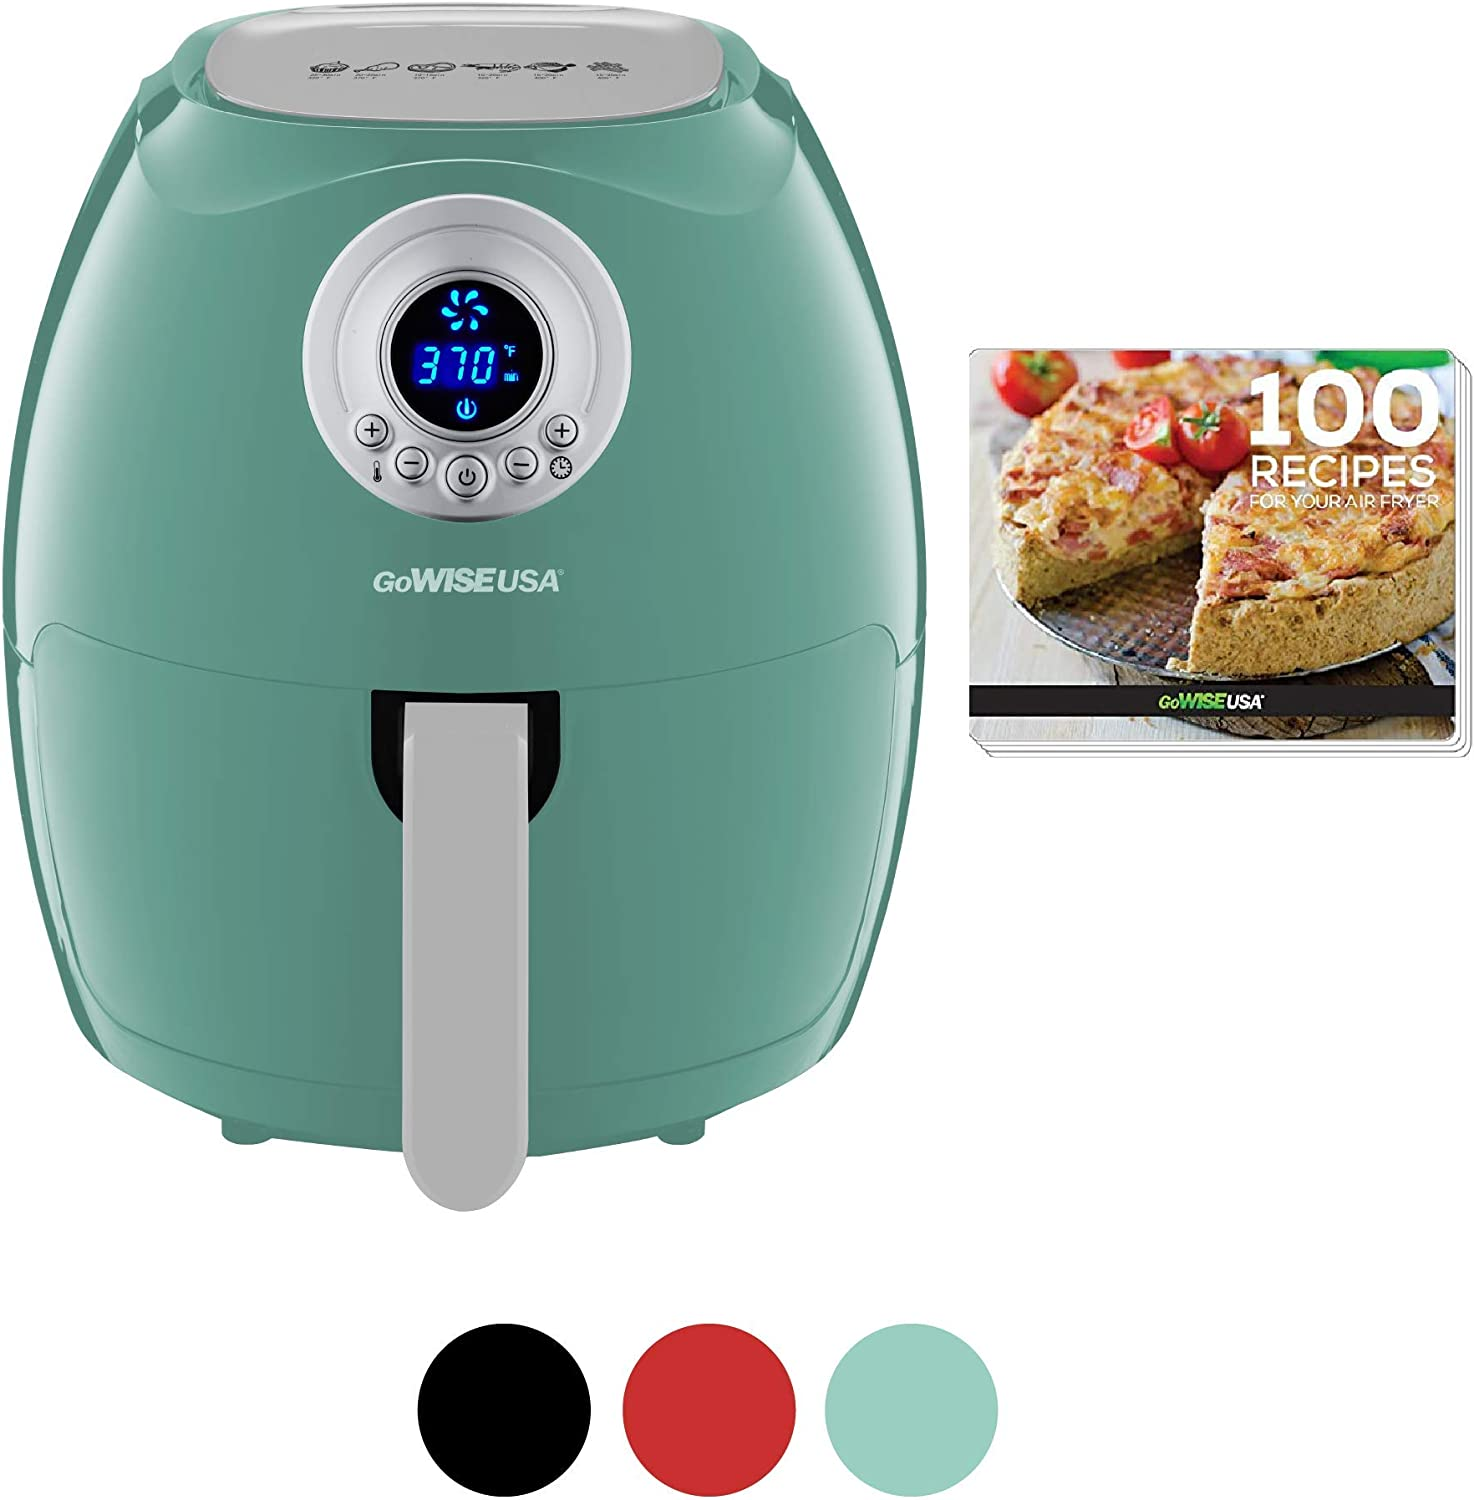 GoWISE USA 3.7-Quart Digital Air Fryer + 100 Recipes, Mint, Qt